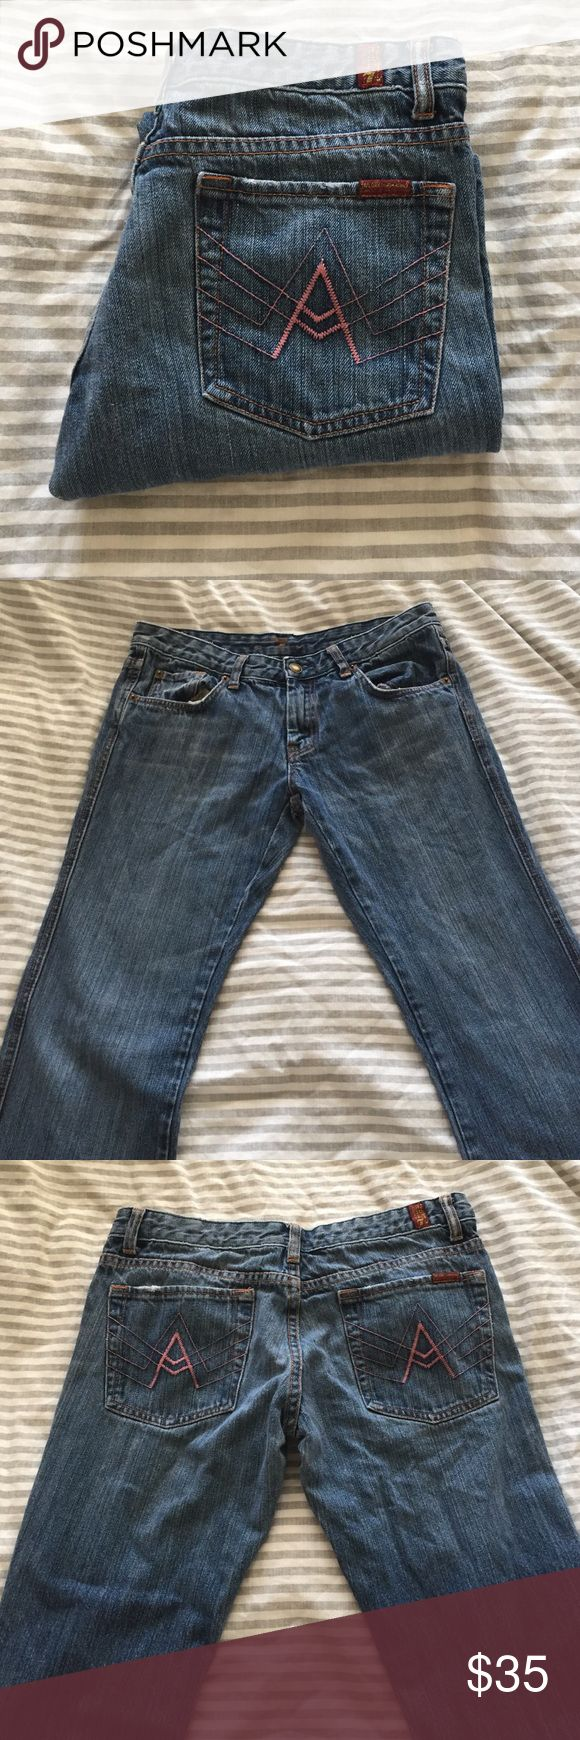 "7 for all mankind ""A"" pocket jeans Seven for all mankind jeans in the ""A"" pocket style. In great condition & in a size 30. 7 For All Mankind Jeans"